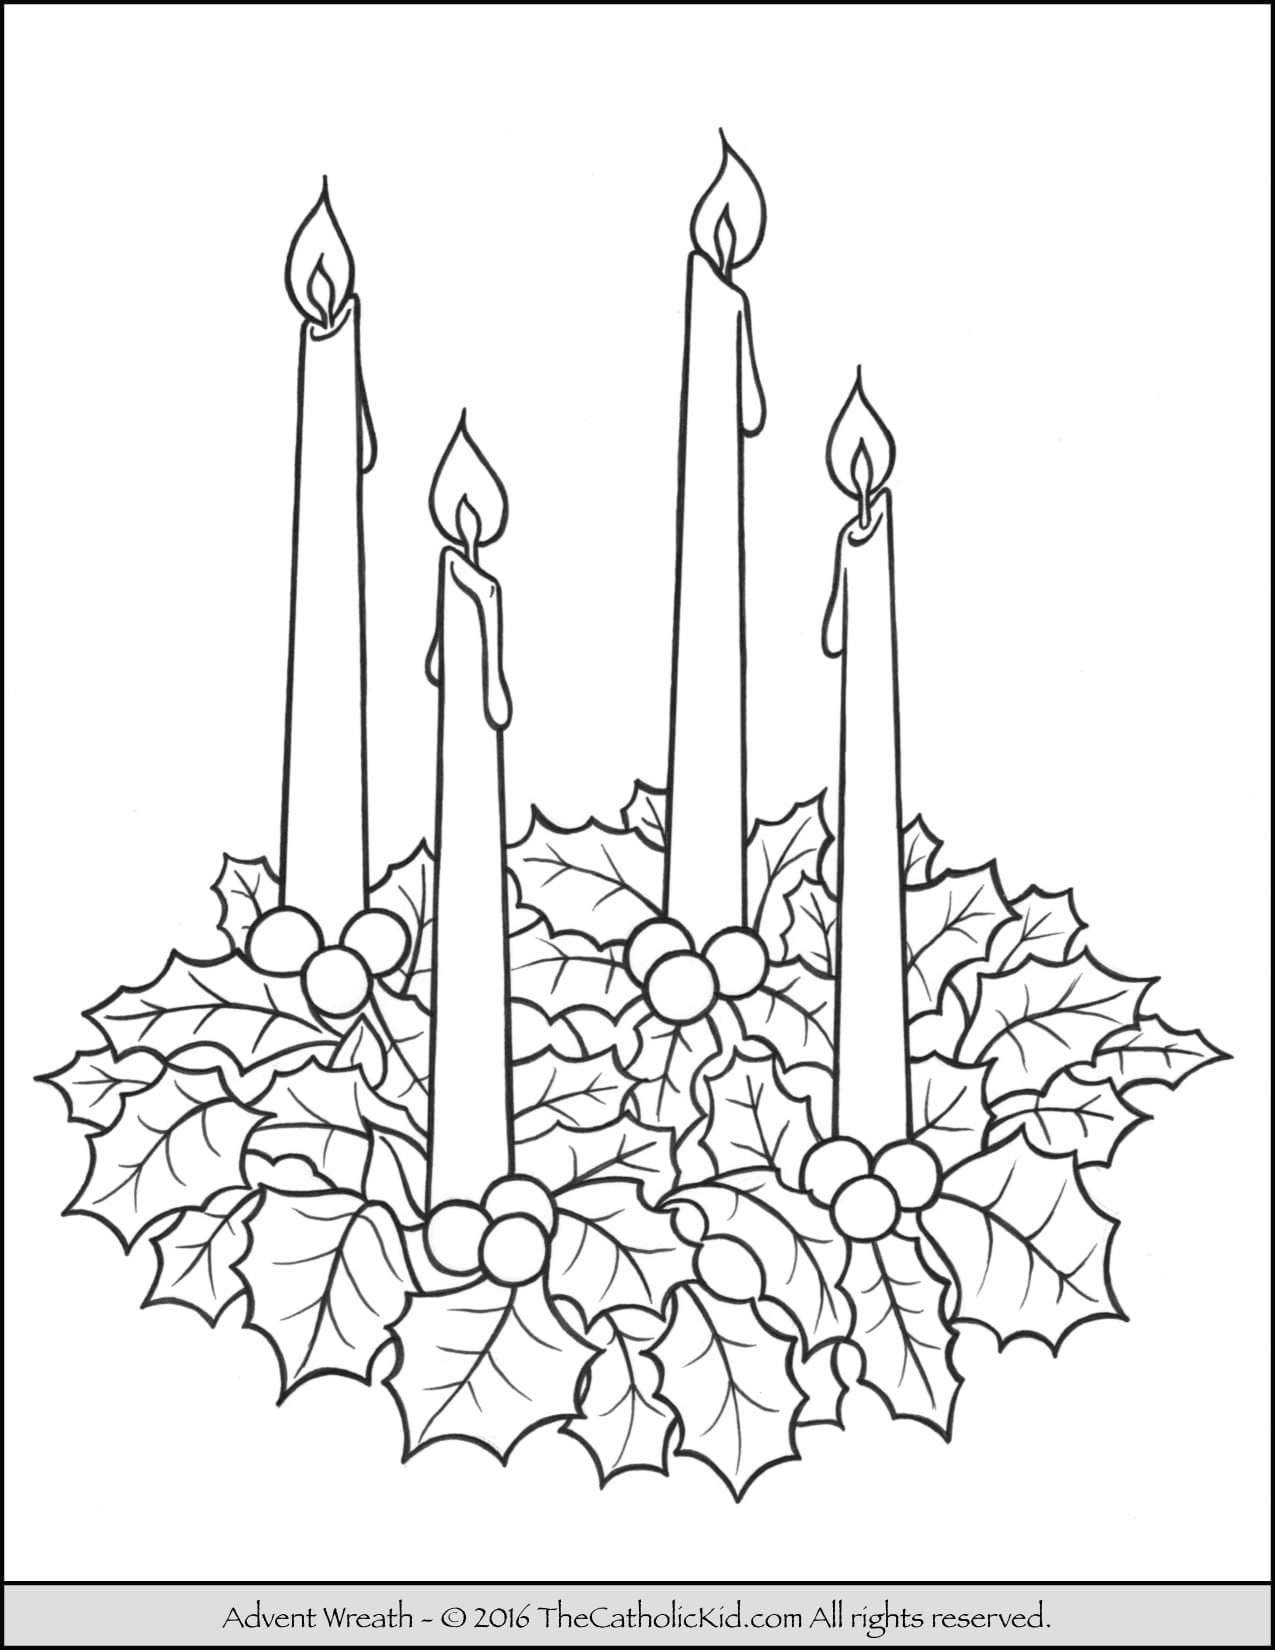 Advent Wreath Coloring Page For